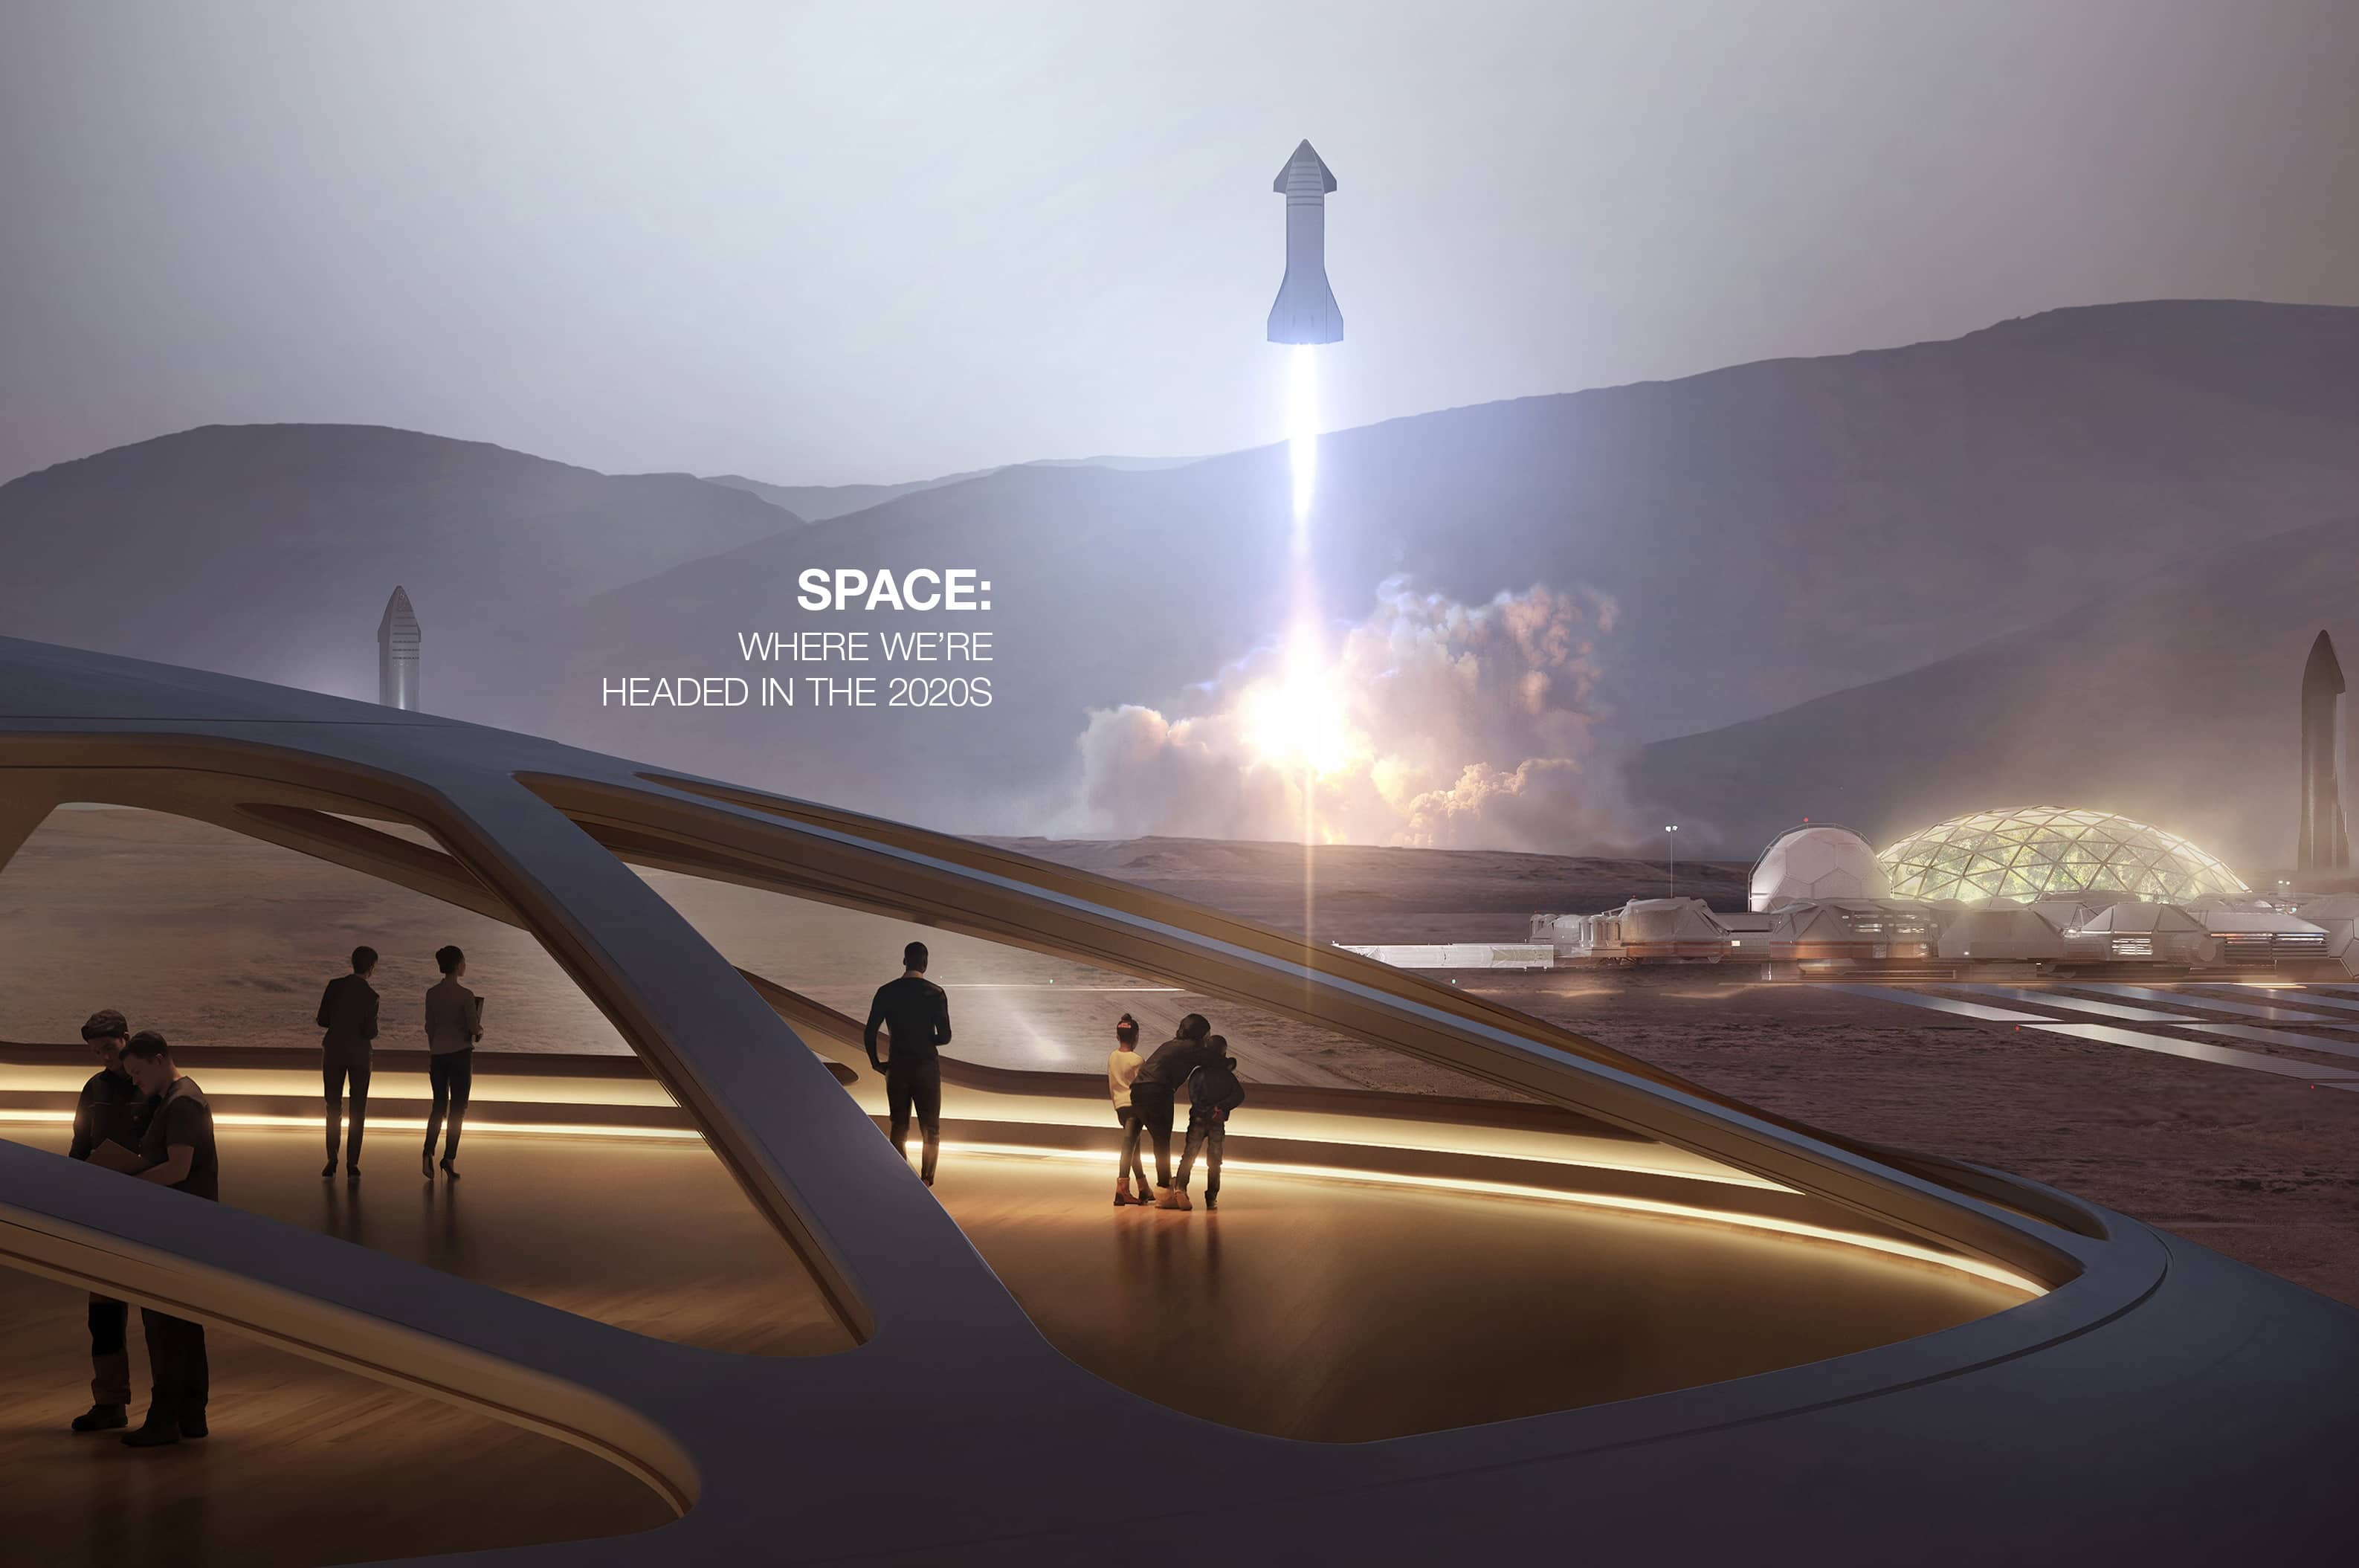 SPACE: WHERE WE'RE HEADED IN THE 2020S